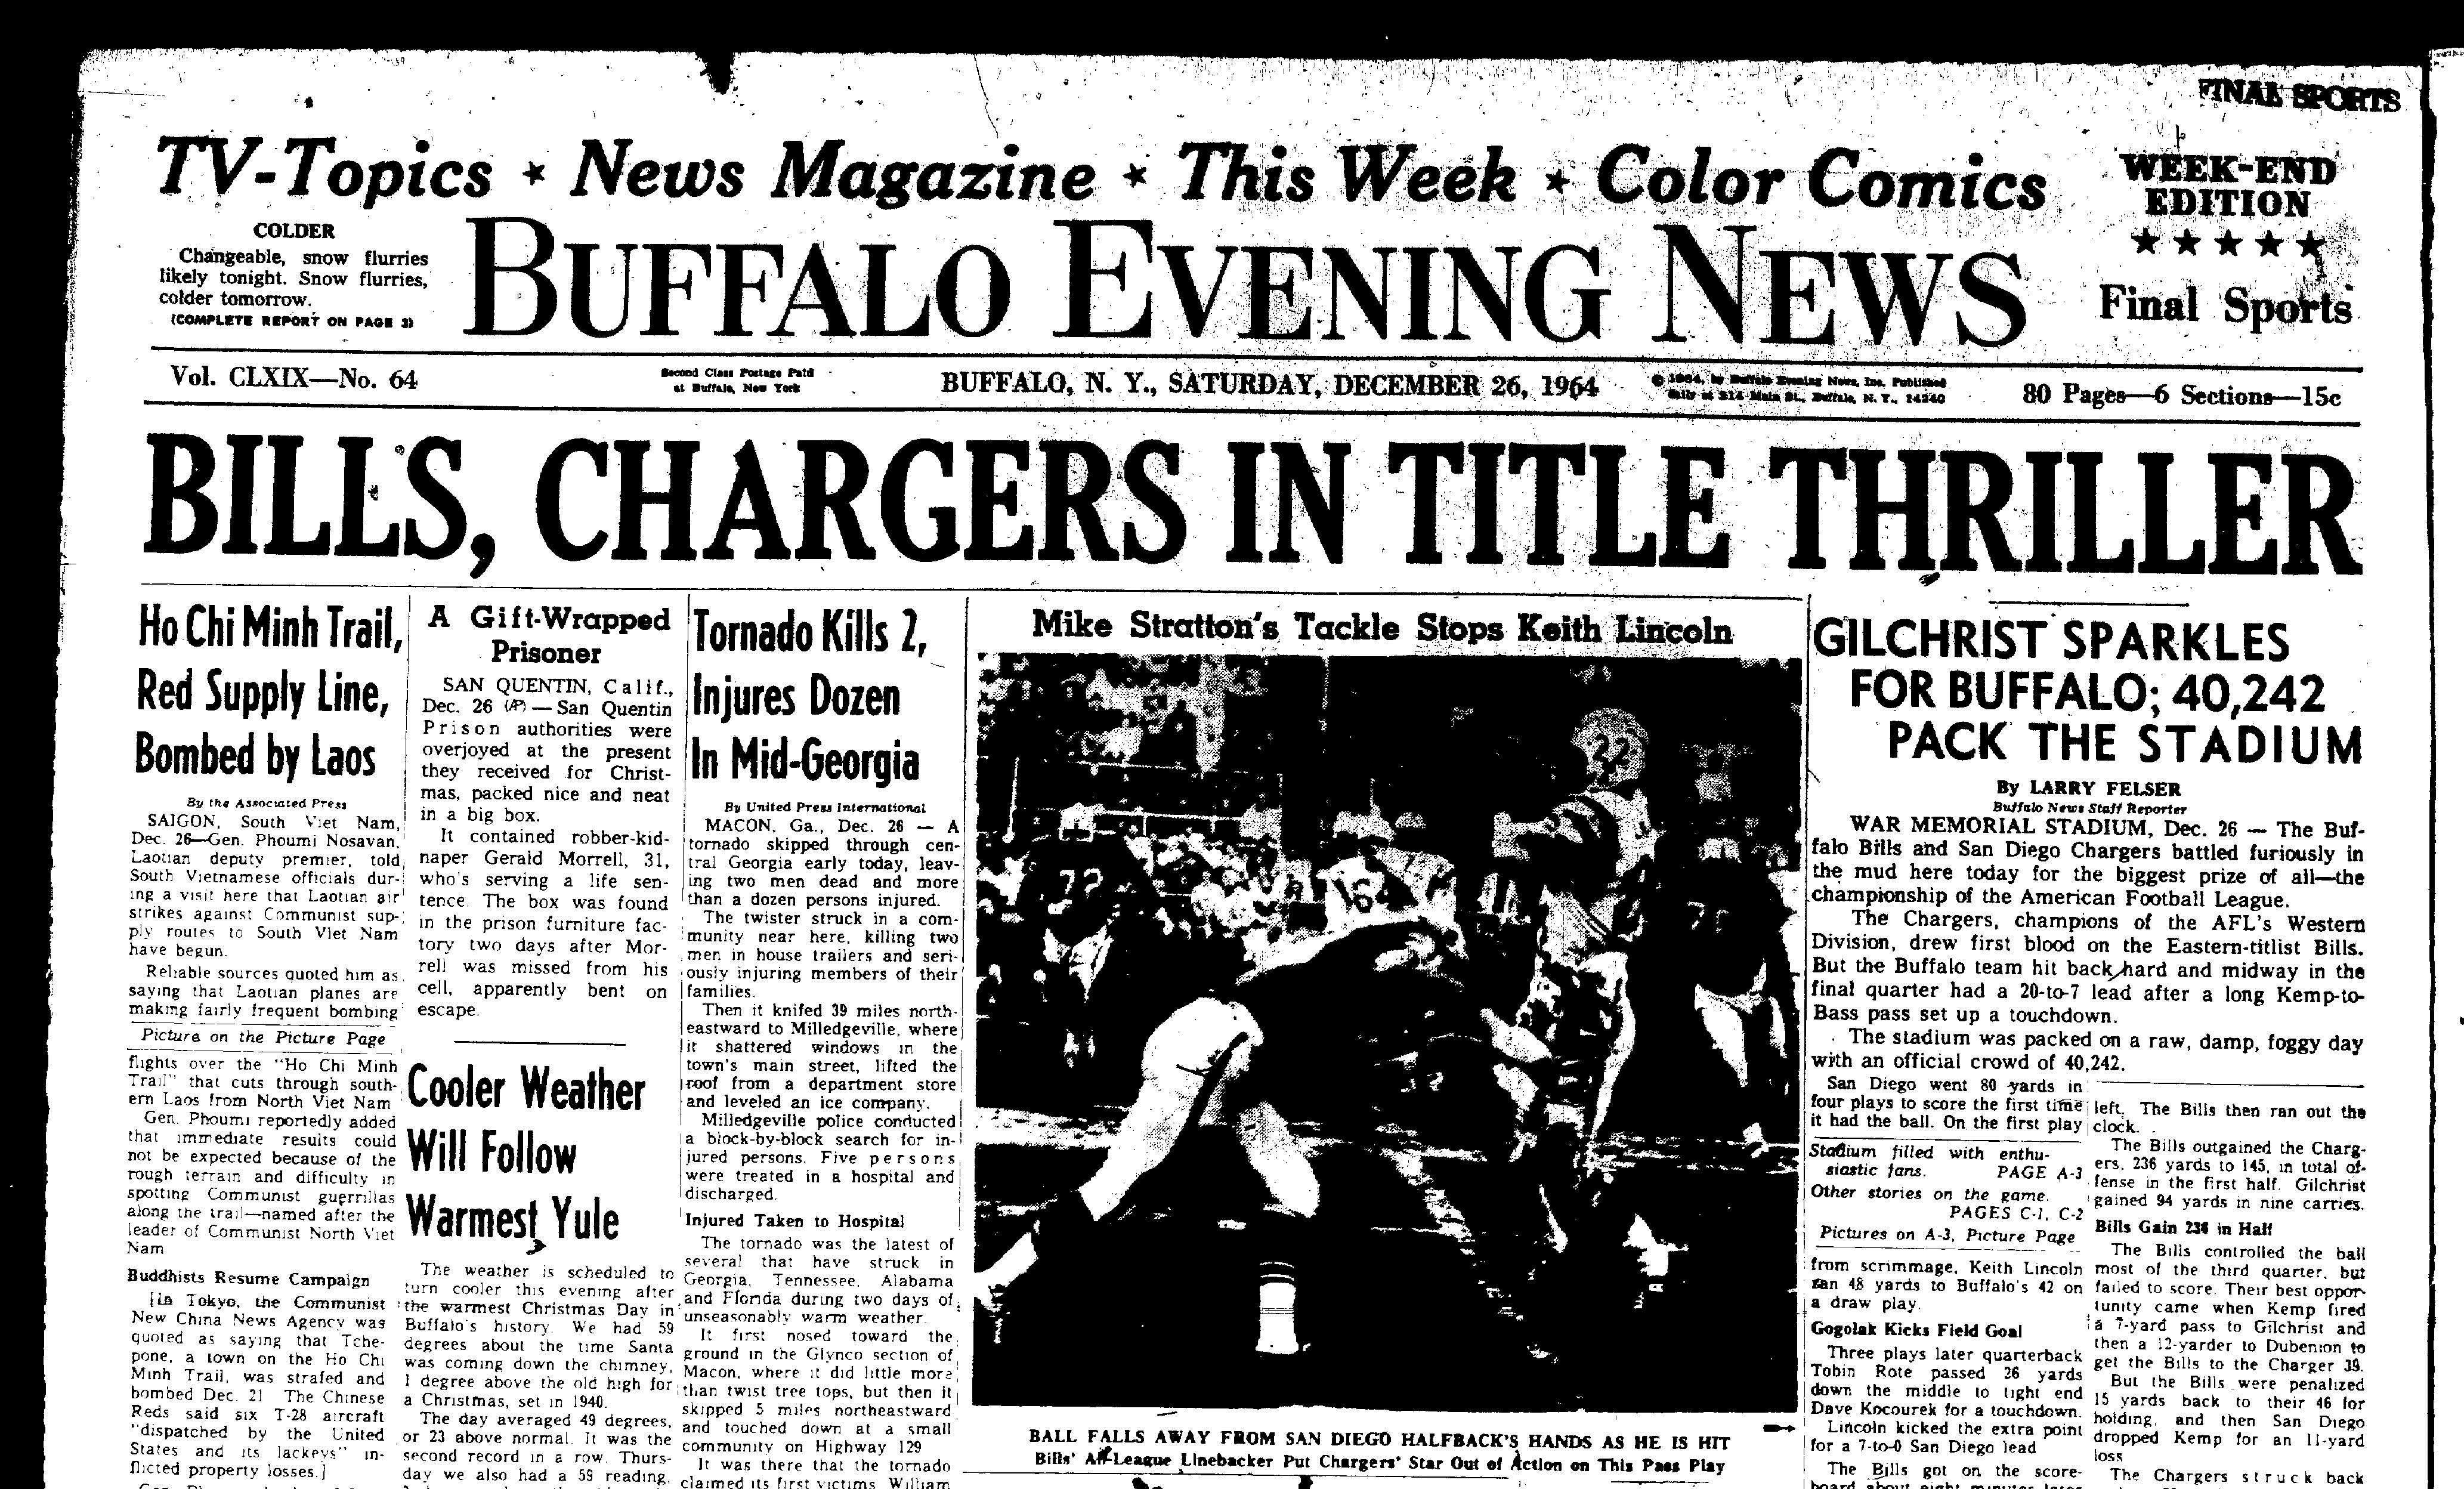 The front page of the last edition of The Buffalo Evening News on Dec. 26, 1964.